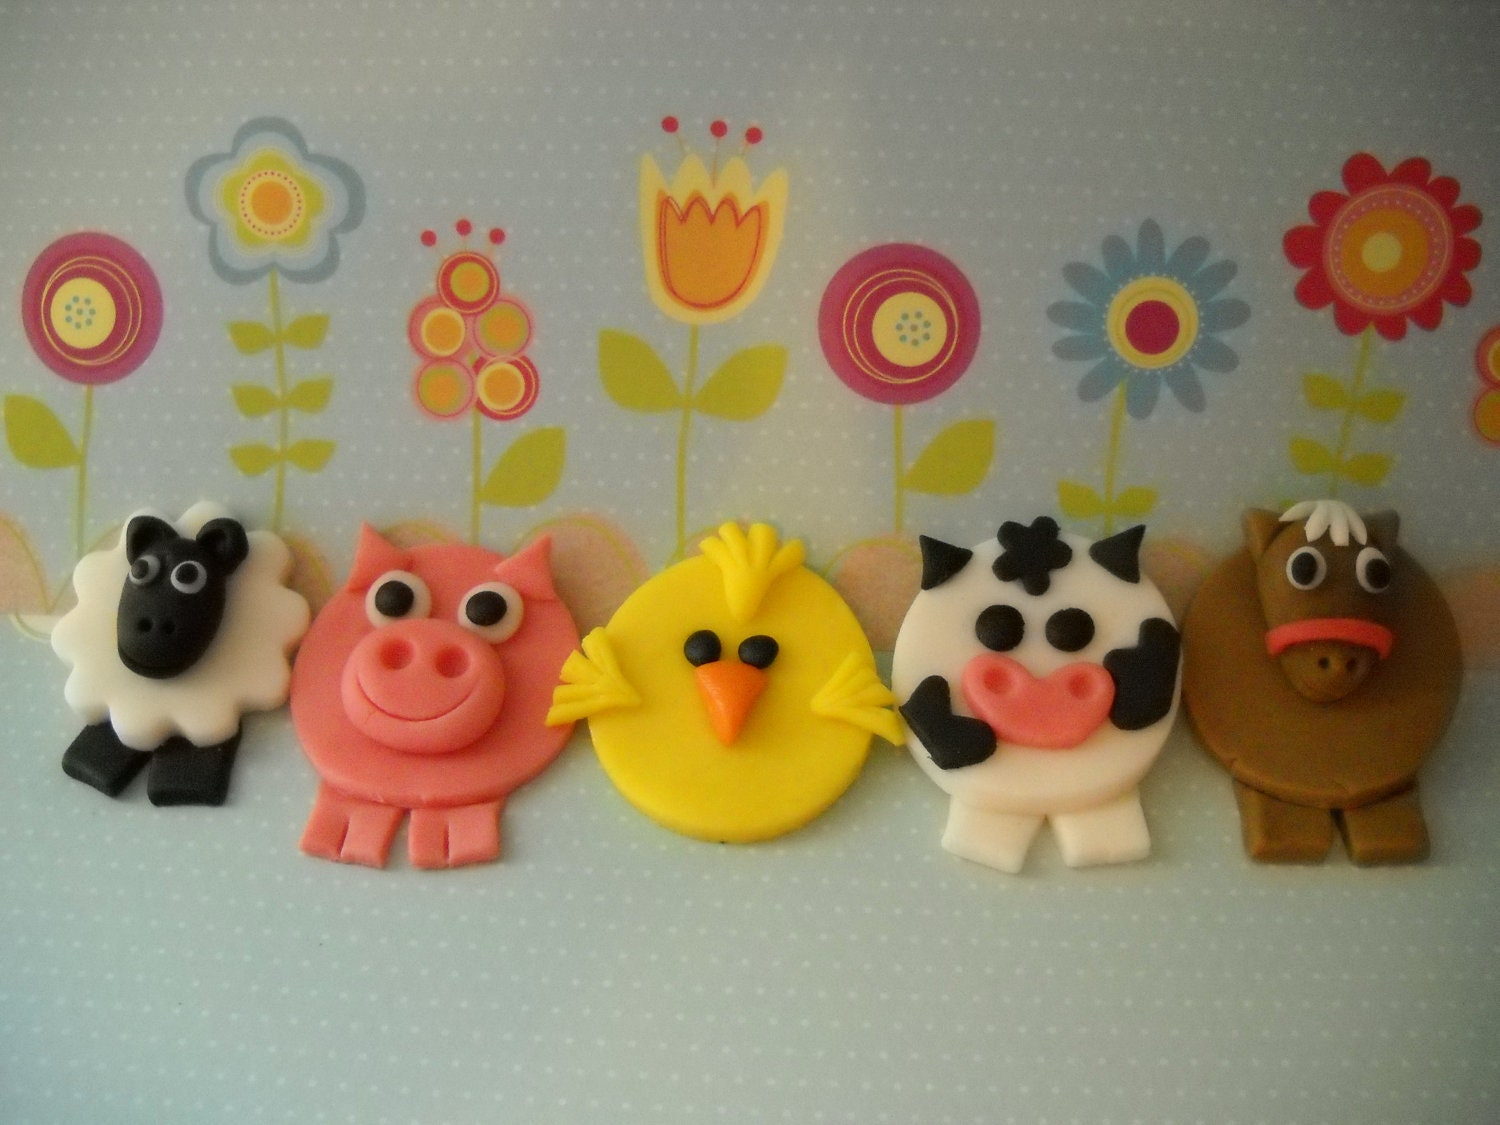 24 Barn Yard Friends Edible Farm Animals Toppers For Cakes